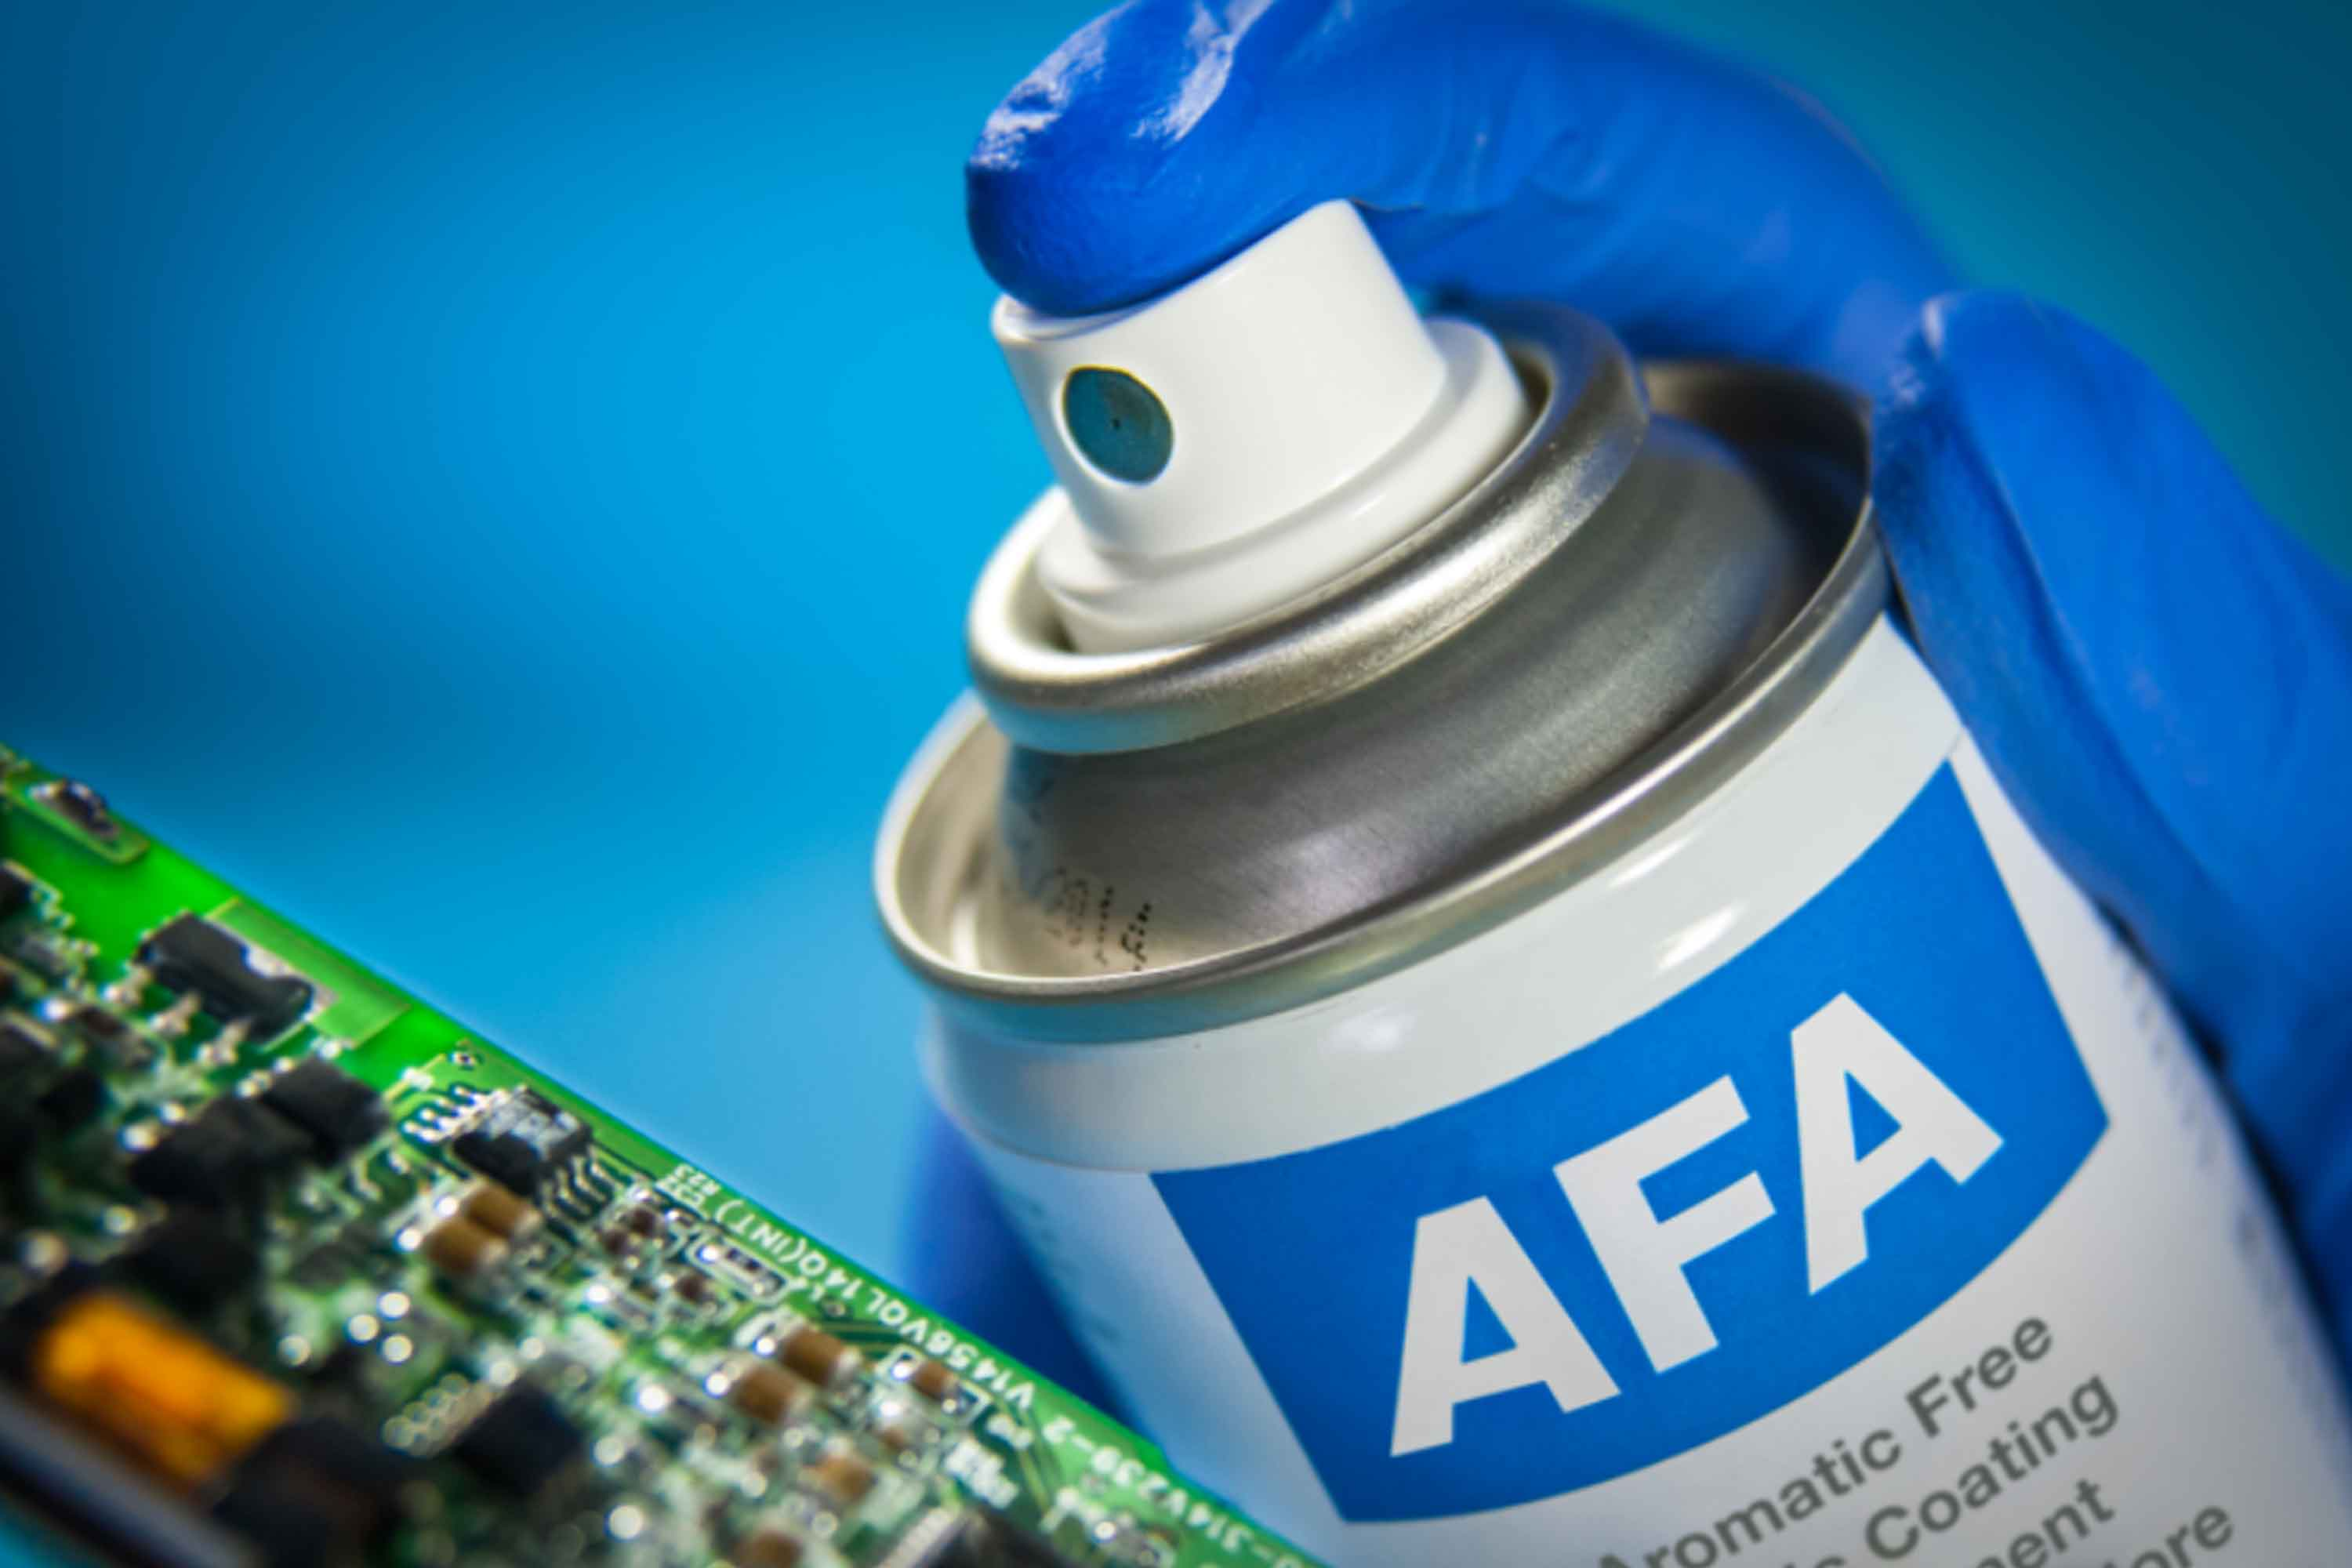 Elektronikk-lakk-conformal-coating